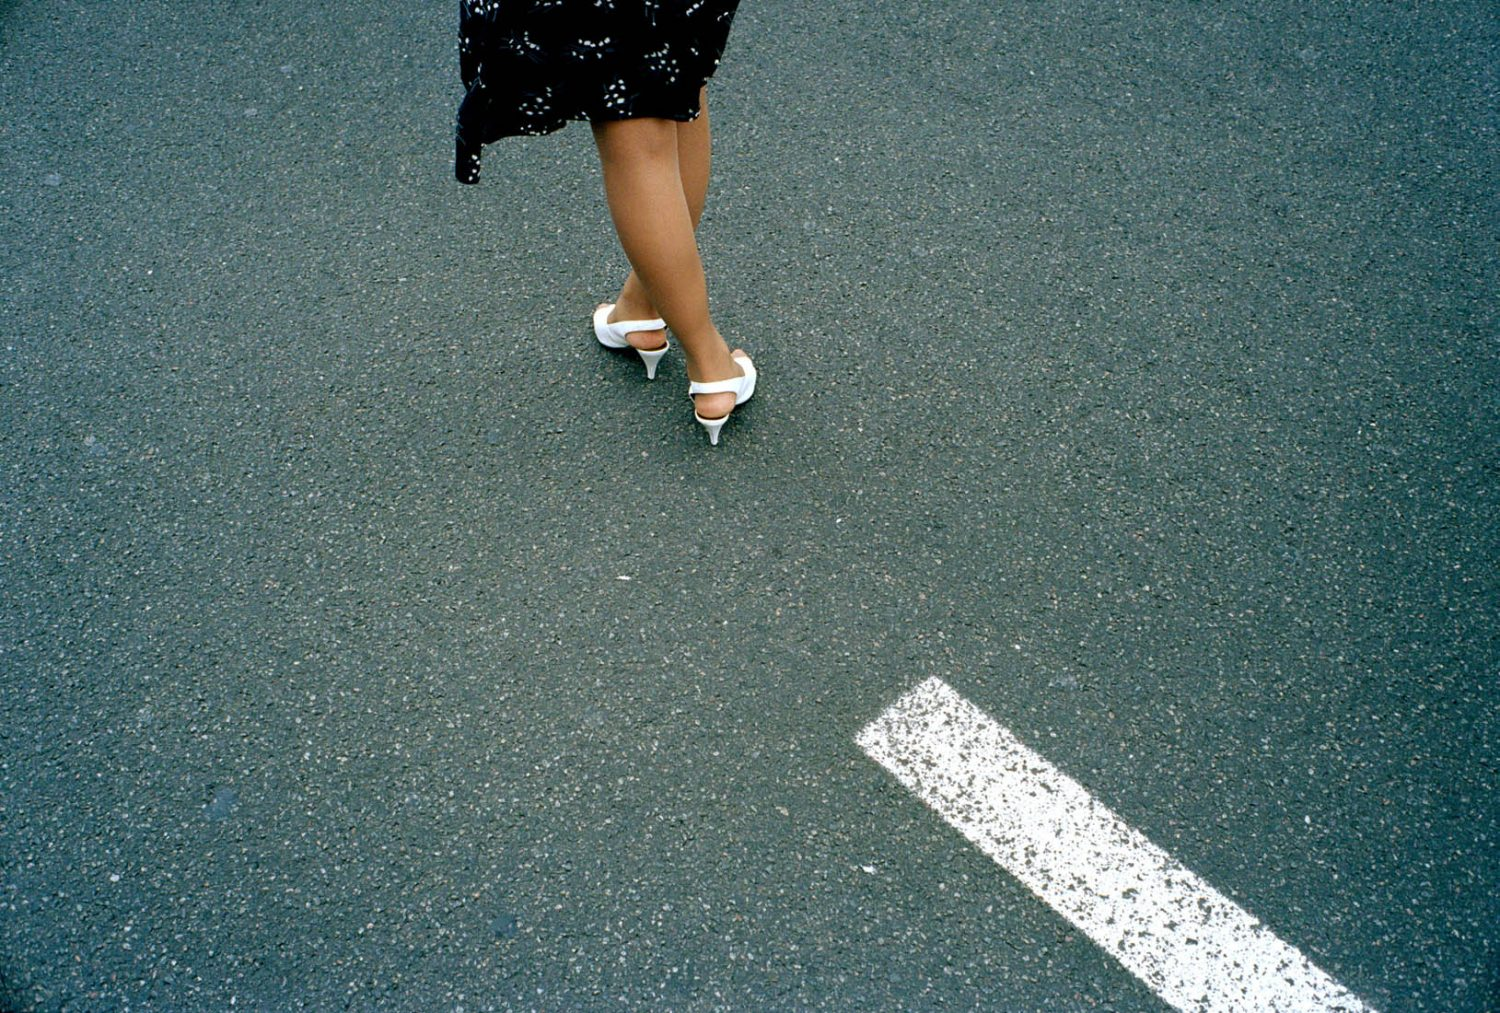 Oekraine, Kiev, 23-08-2006 Benen in Kiev, Beautiful en elegant woman crossed legs on high heels in the streets of Kiev PHOTO AND COPYRIGHT ROGER CREMERS